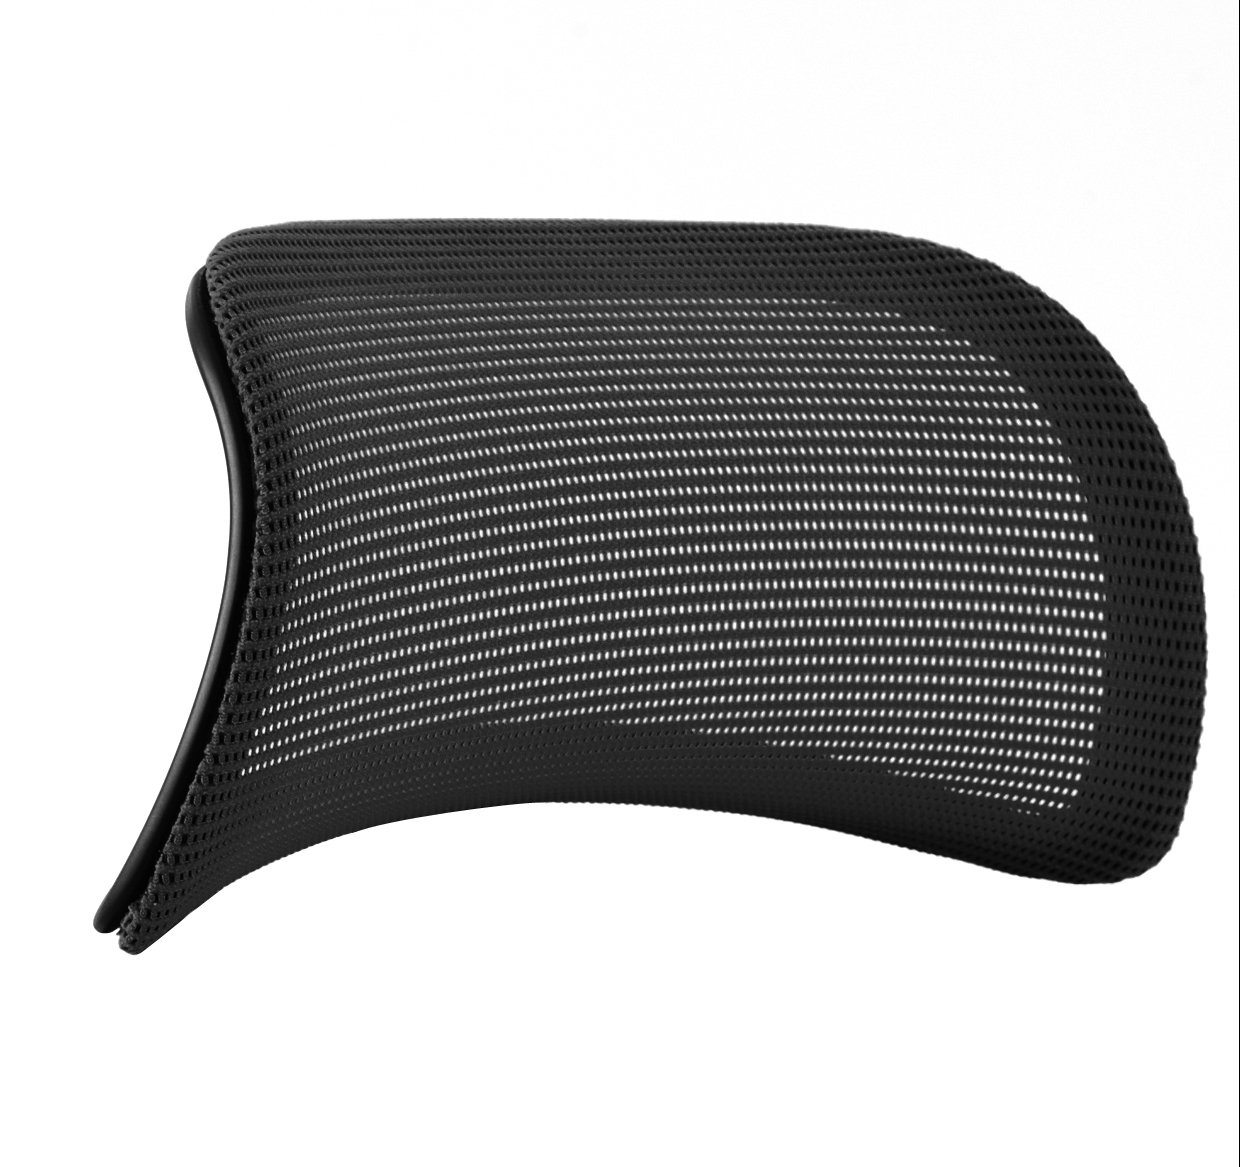 Amazon.com: Okamura Contessa (Contessa) office chair option parts large headrest (mesh fixed) black frame [Contessa only] black CM501B-FBC1: Kitchen & ...